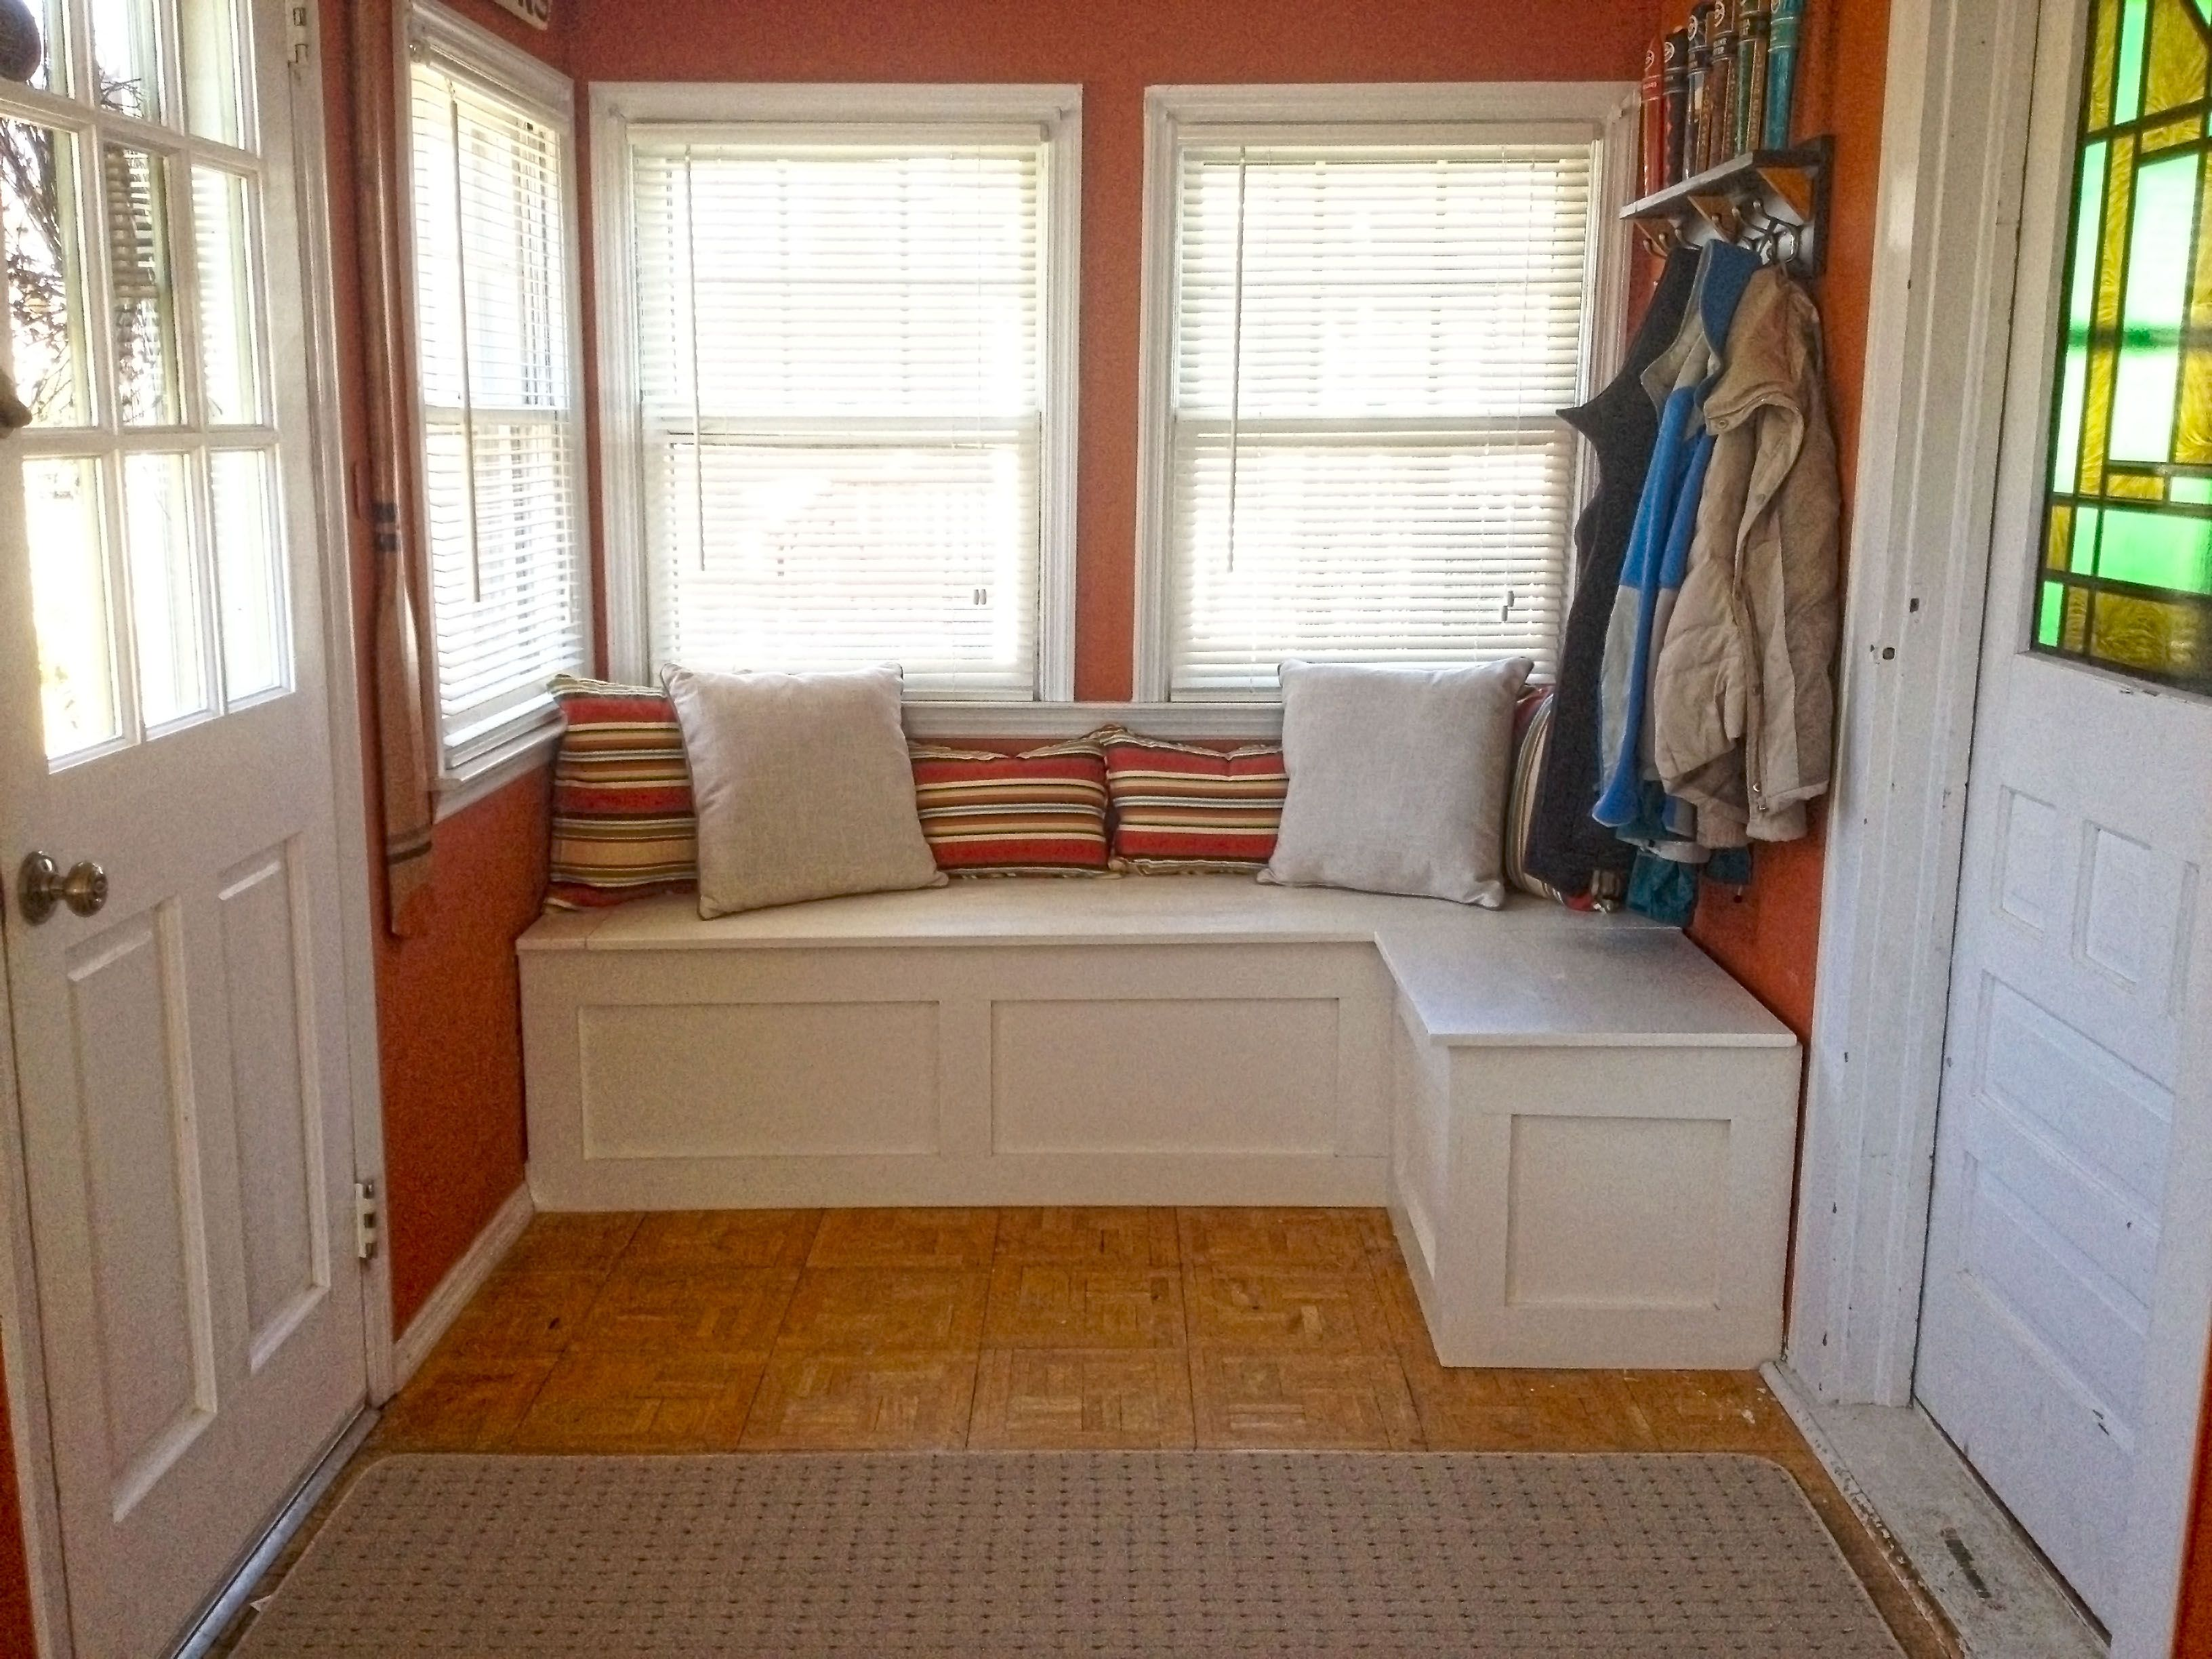 Window Seat Bench Ideas Part - 21: DIY Window Seat/Storage Bench